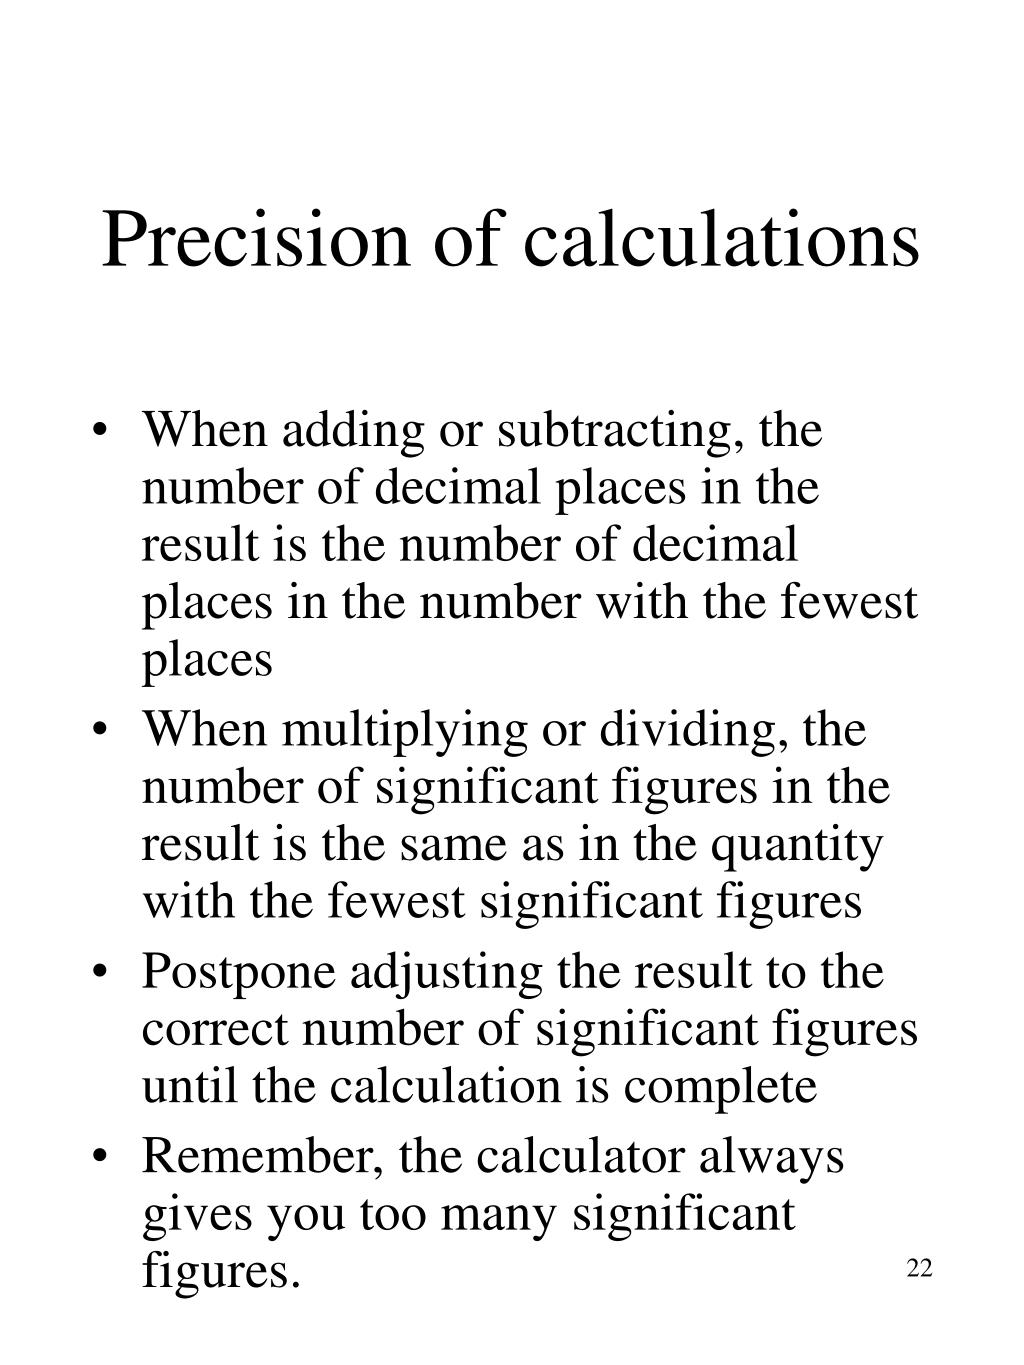 Precision of calculations